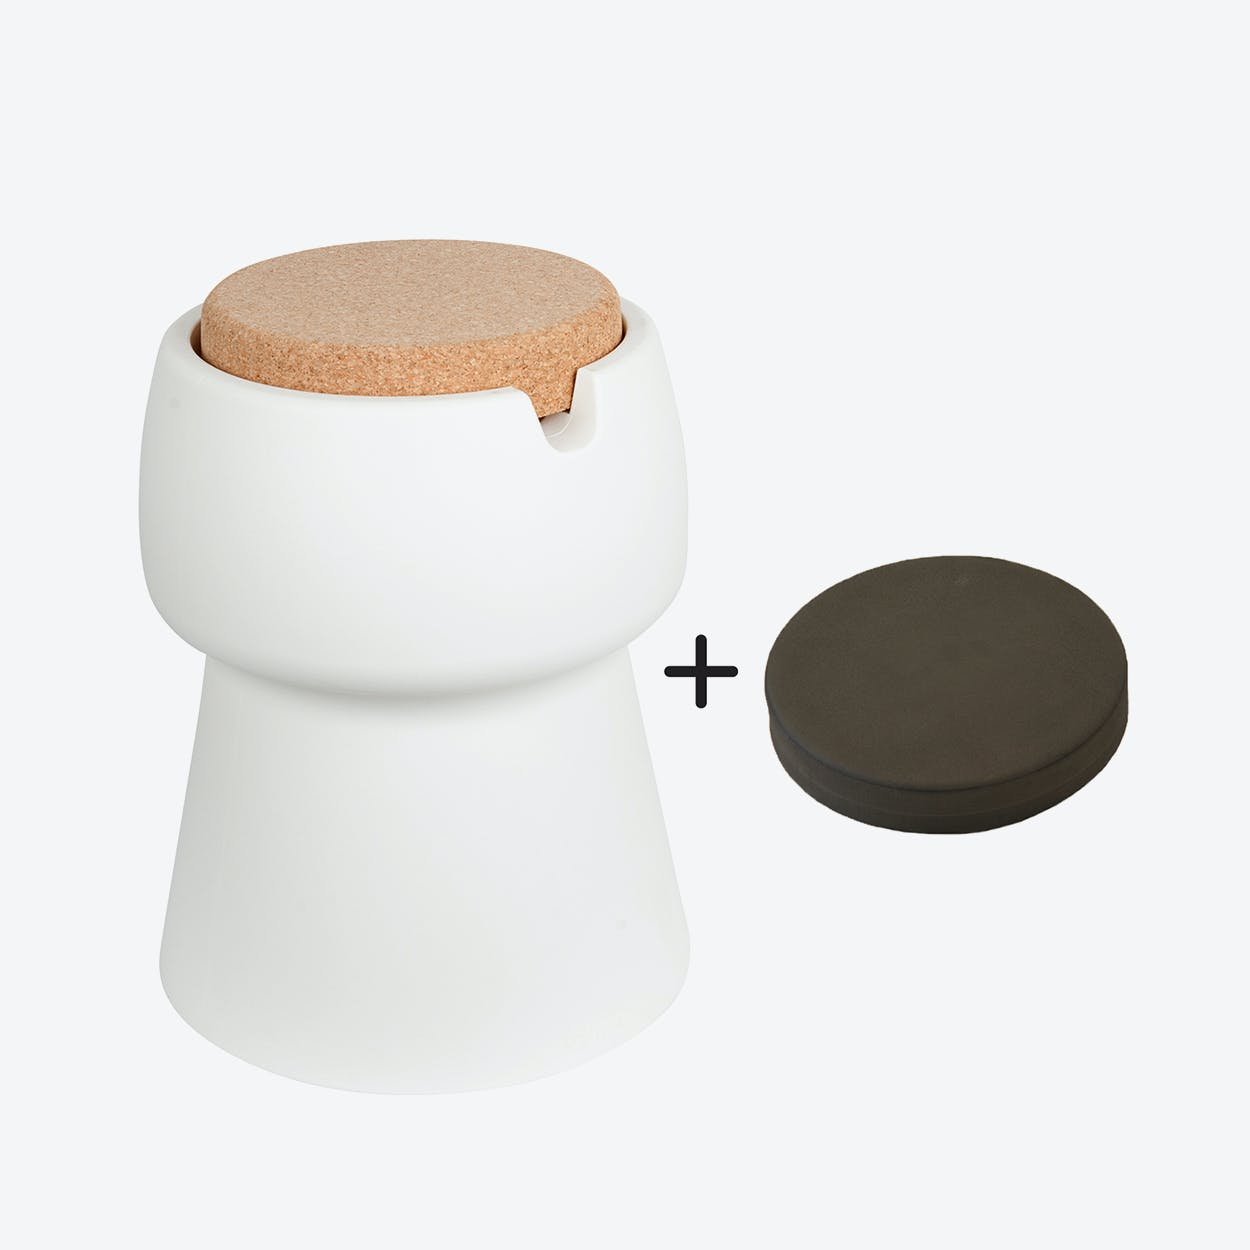 Champ Stool/Cooler in White: Cork + Grey Outdoor Cushion